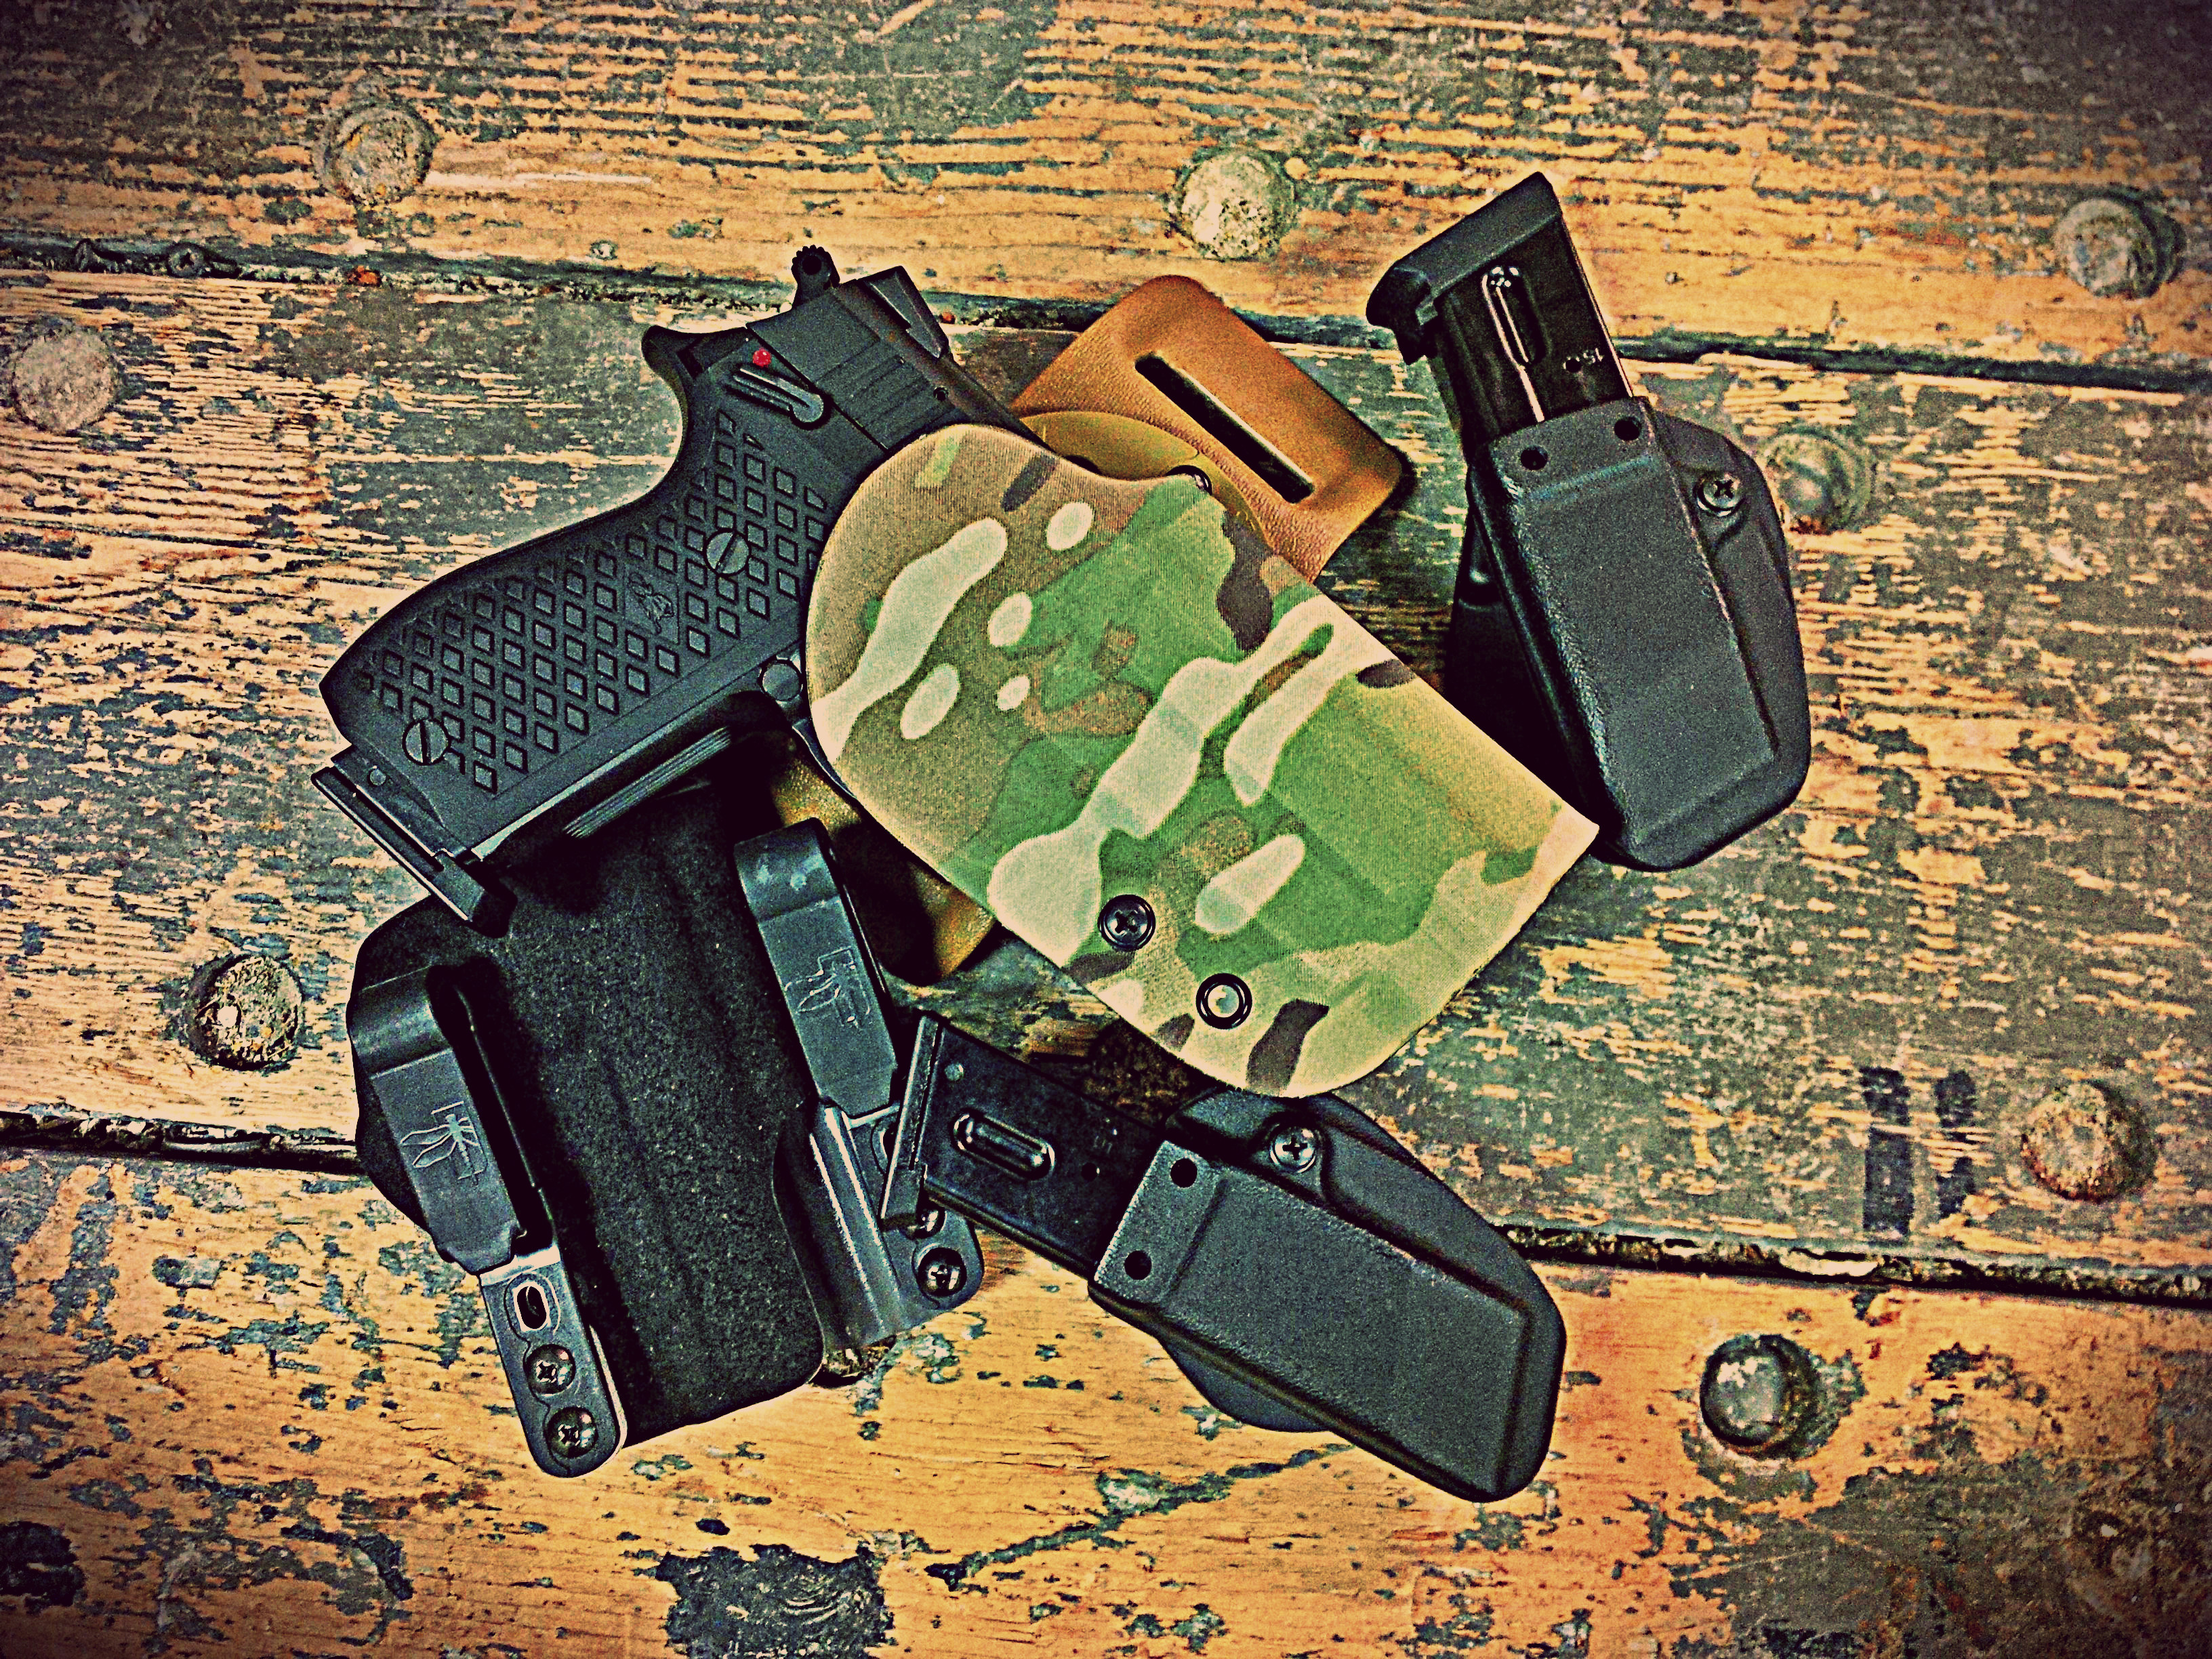 Concealed carry buyer's guide